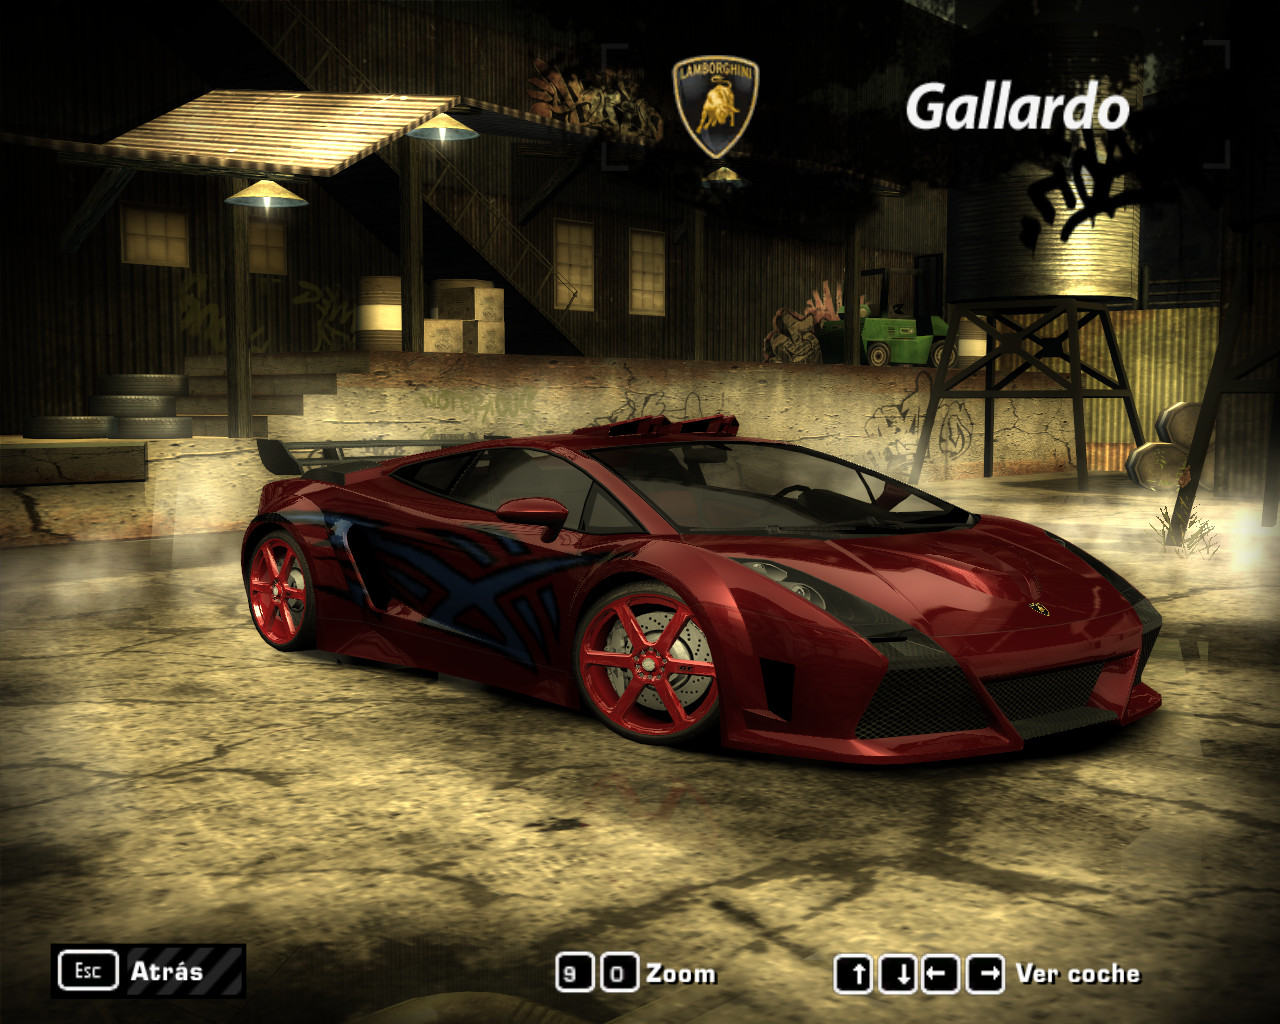 Nfs Most Wanted 615758 Hd Wallpaper Backgrounds Download